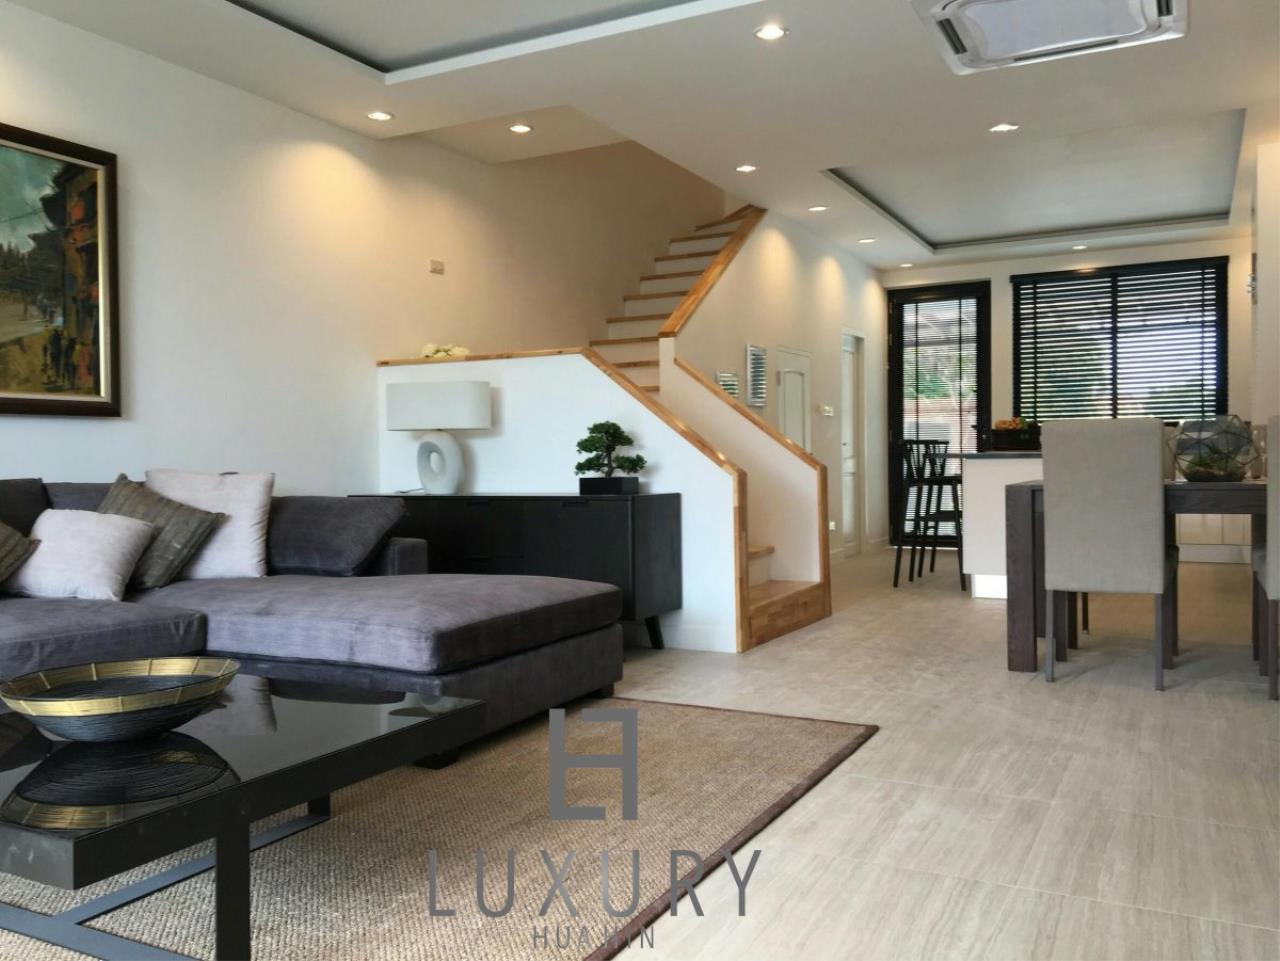 Luxury Hua Hin Property Agency's New Development - New Townhouses close to Hua Hin town centre 6